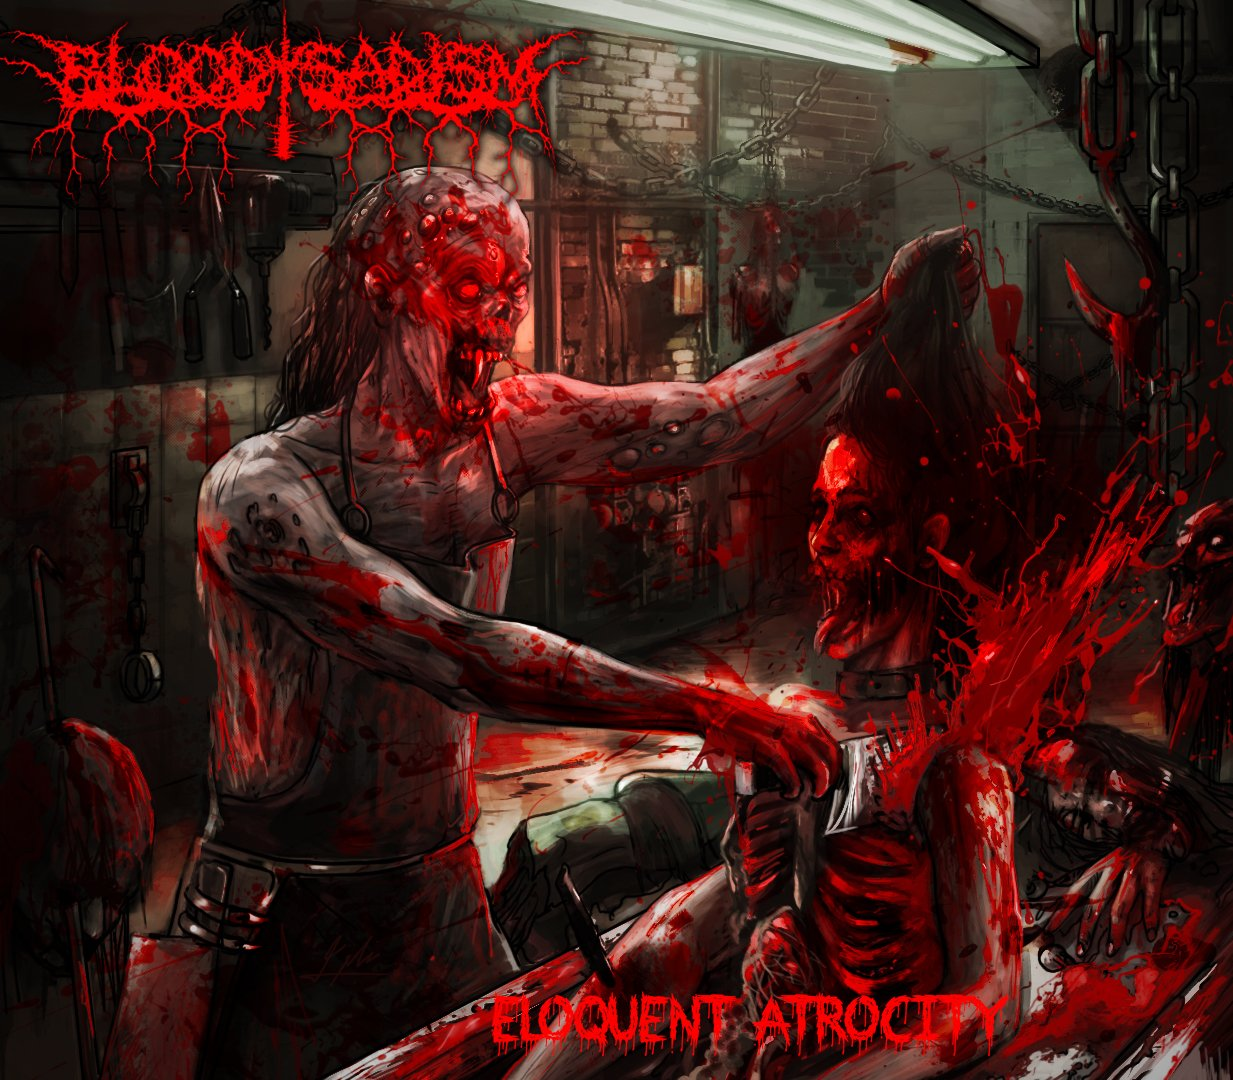 Bloody Sadism - Eloquent Atrocity [Promo, Single]